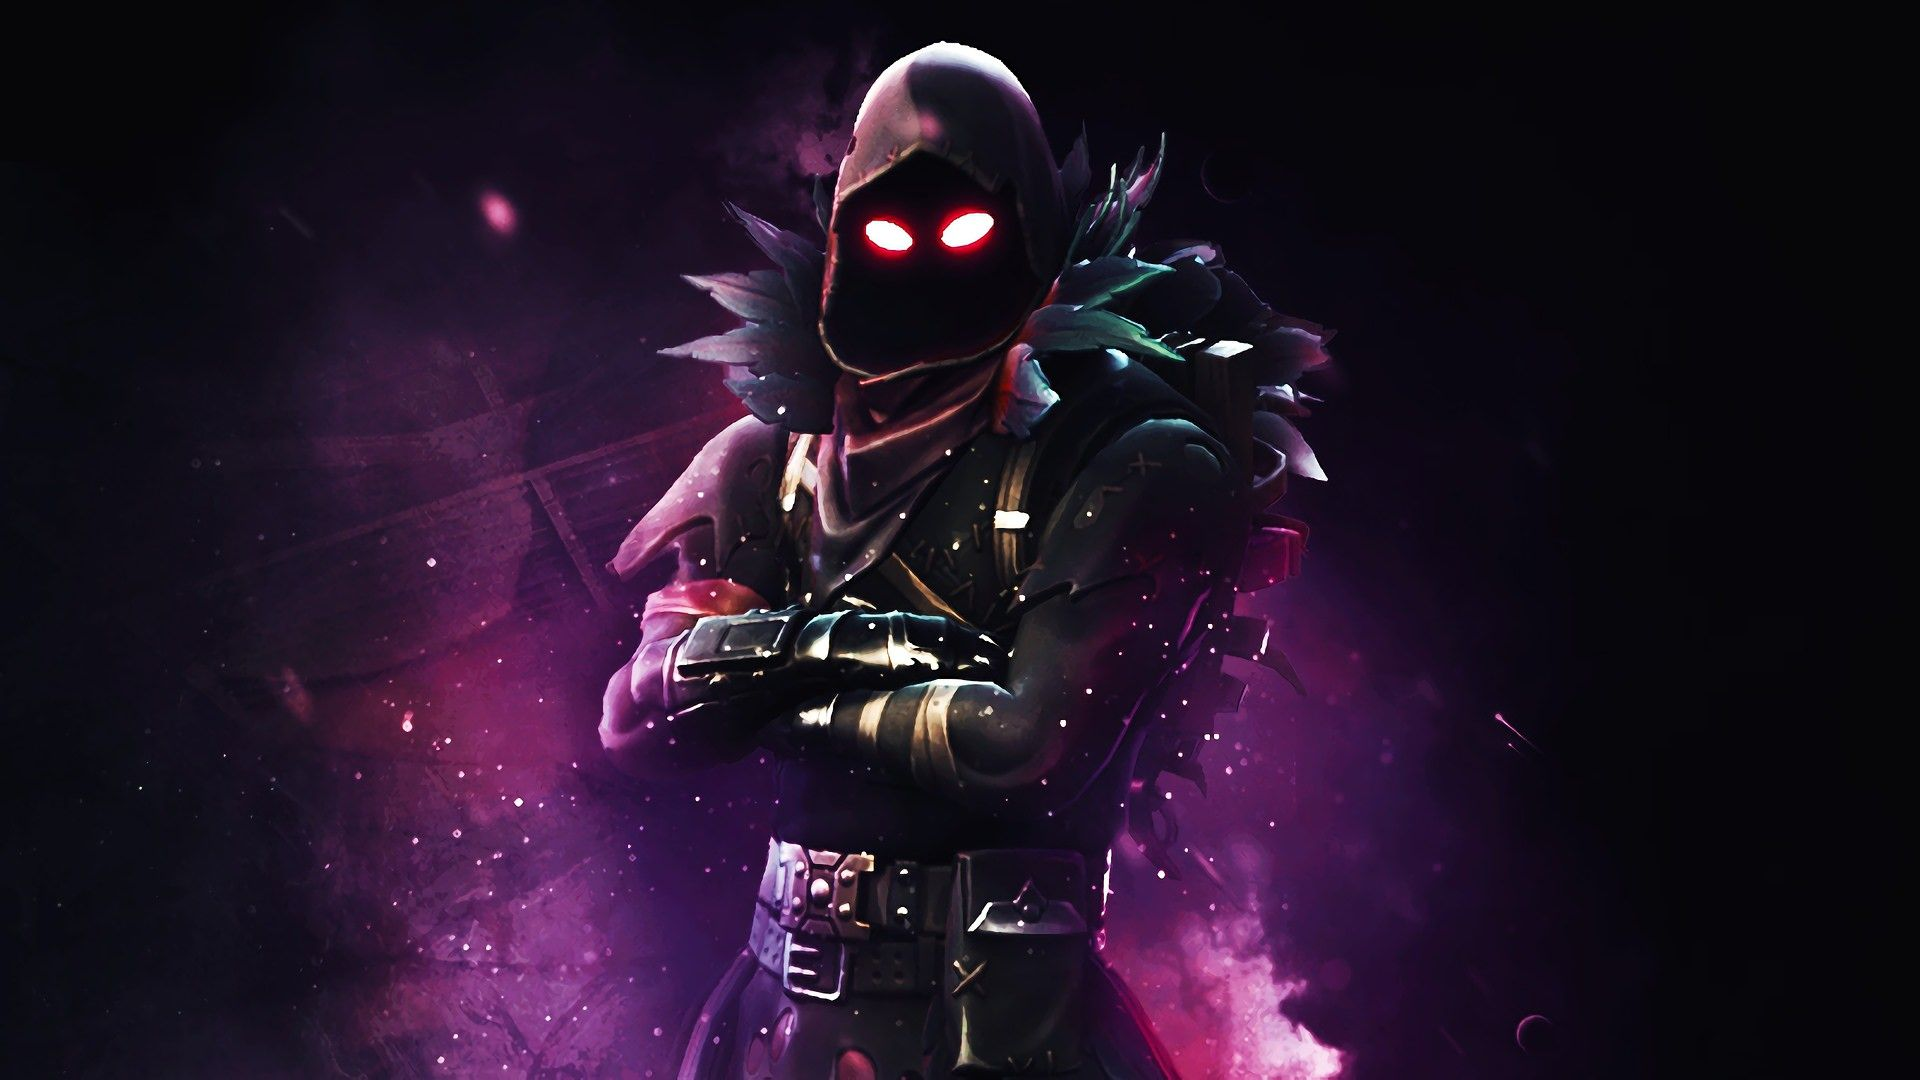 Cool Backgrounds Of Fortnite